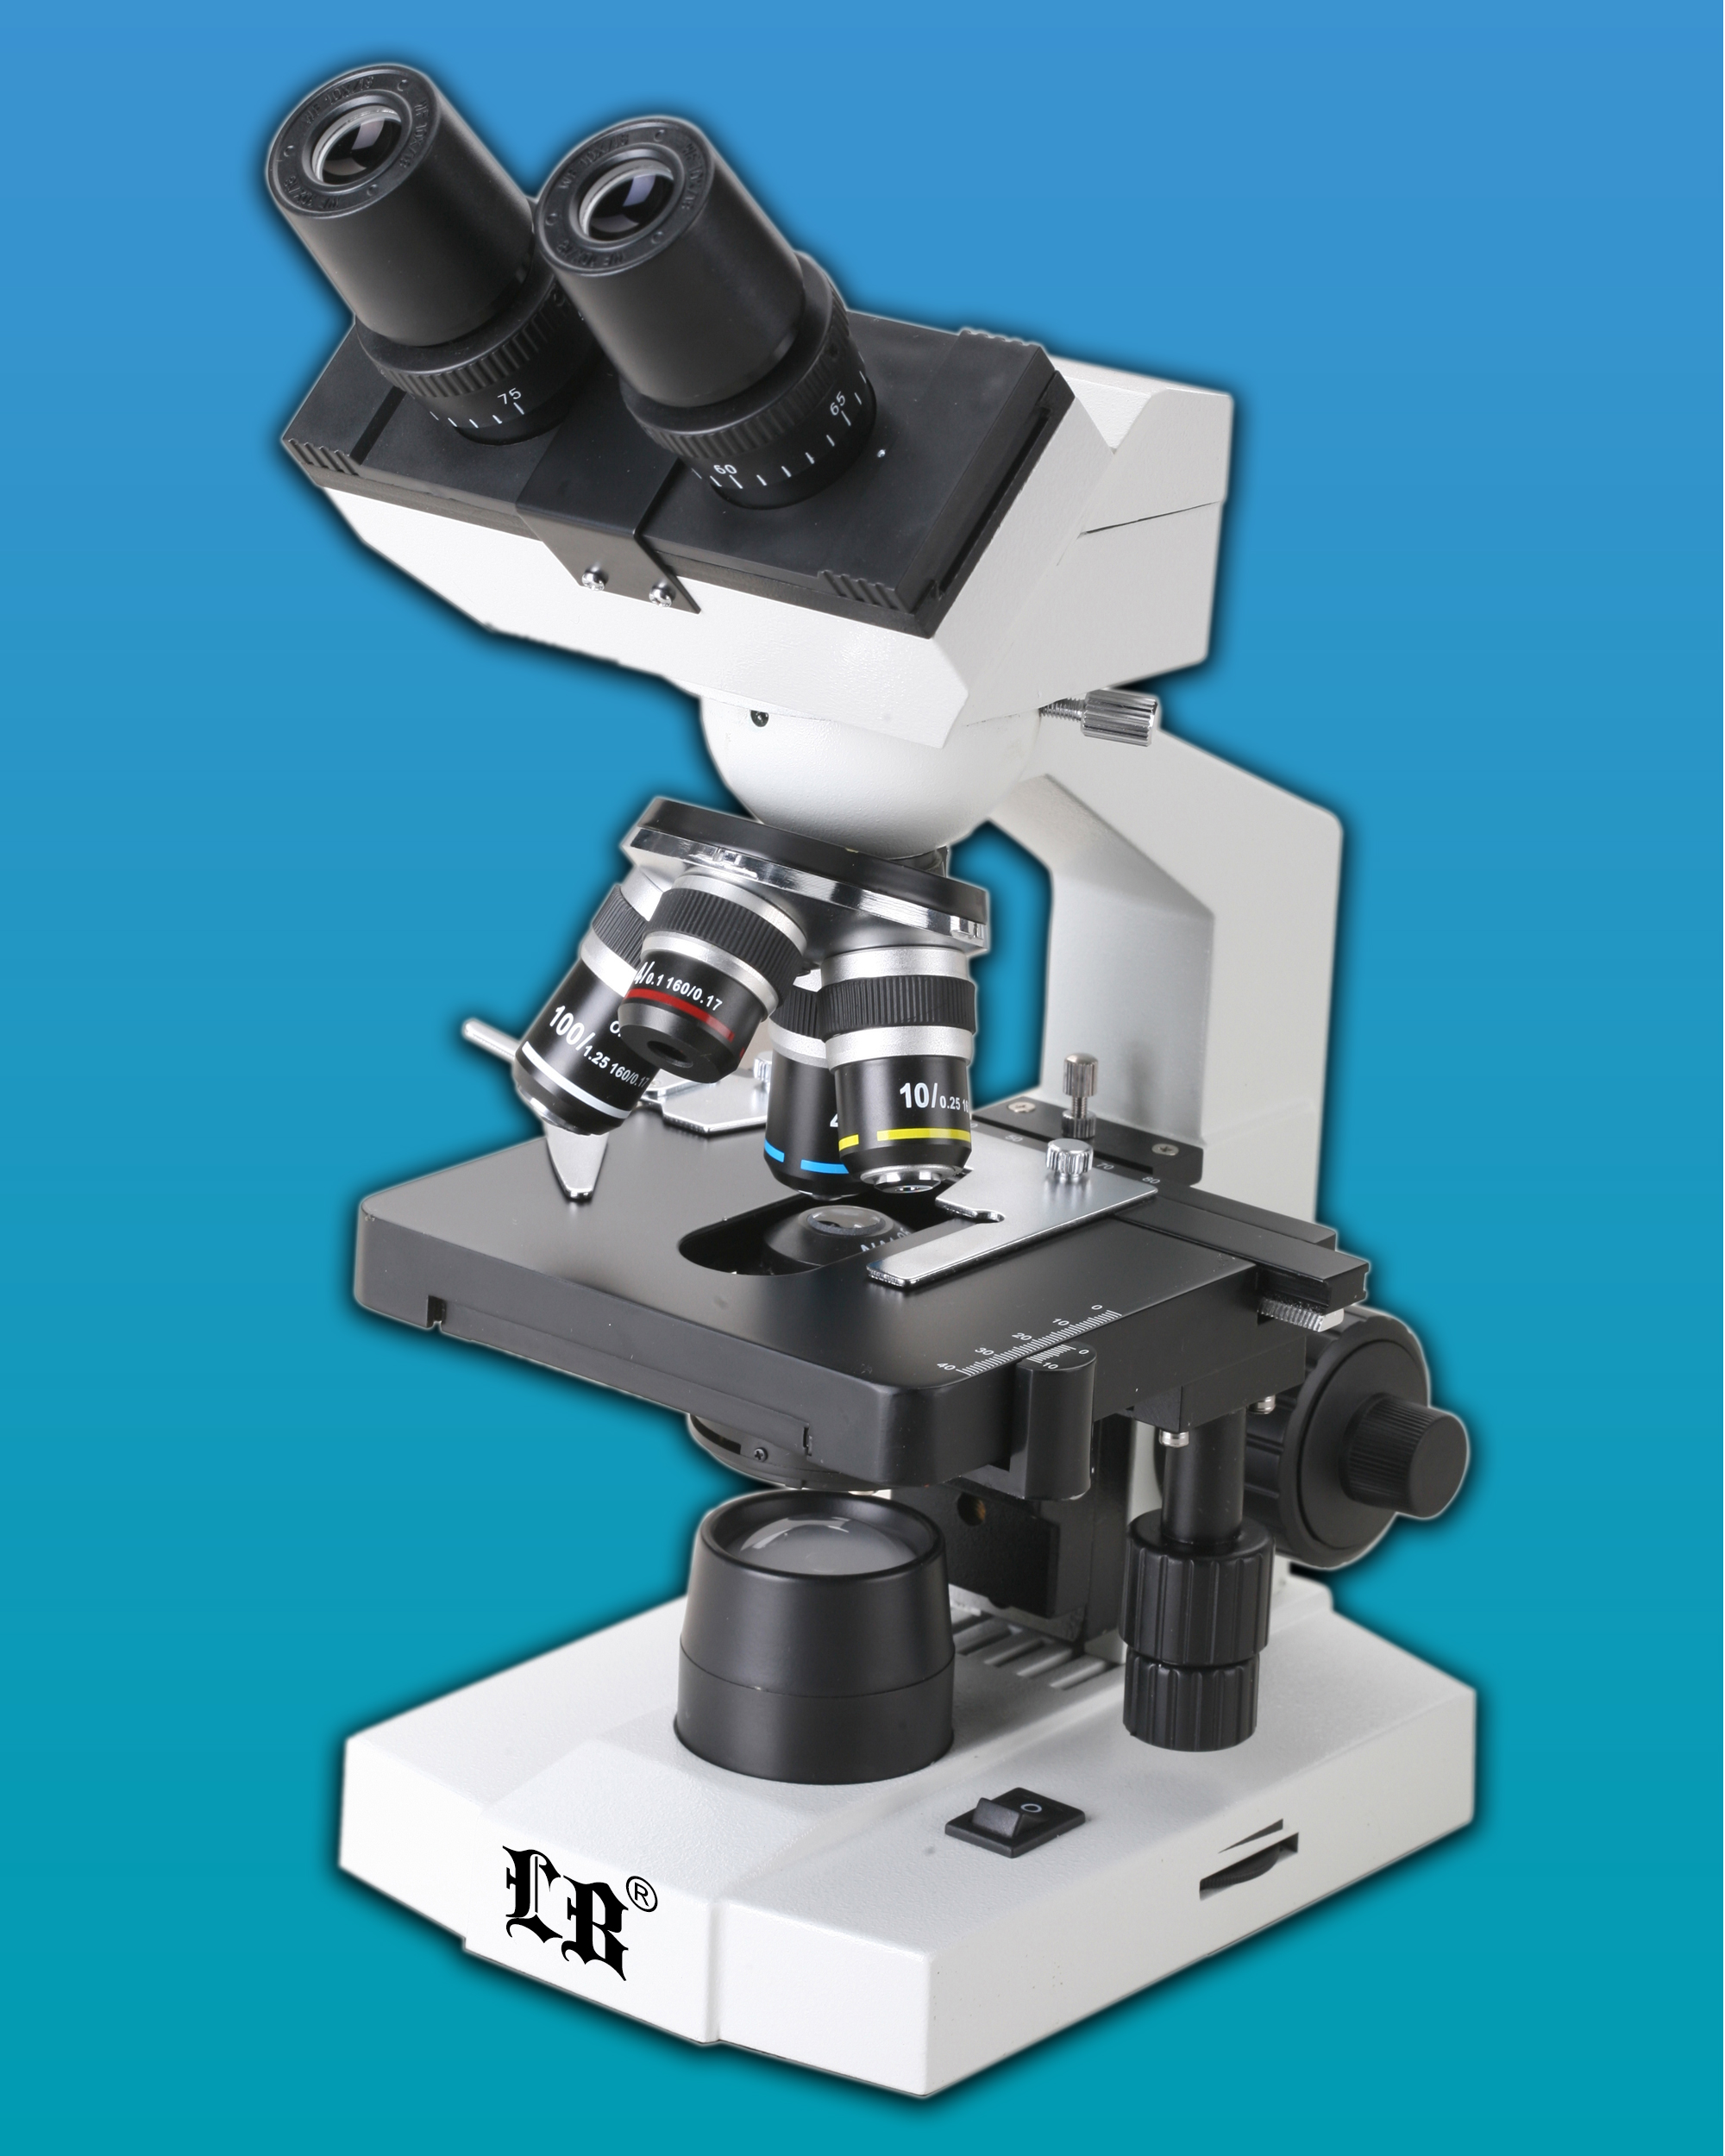 [LB-212] Biological Digital Microscope w/ Wide Field Plane-Scope Eyepiece, Camera & Software